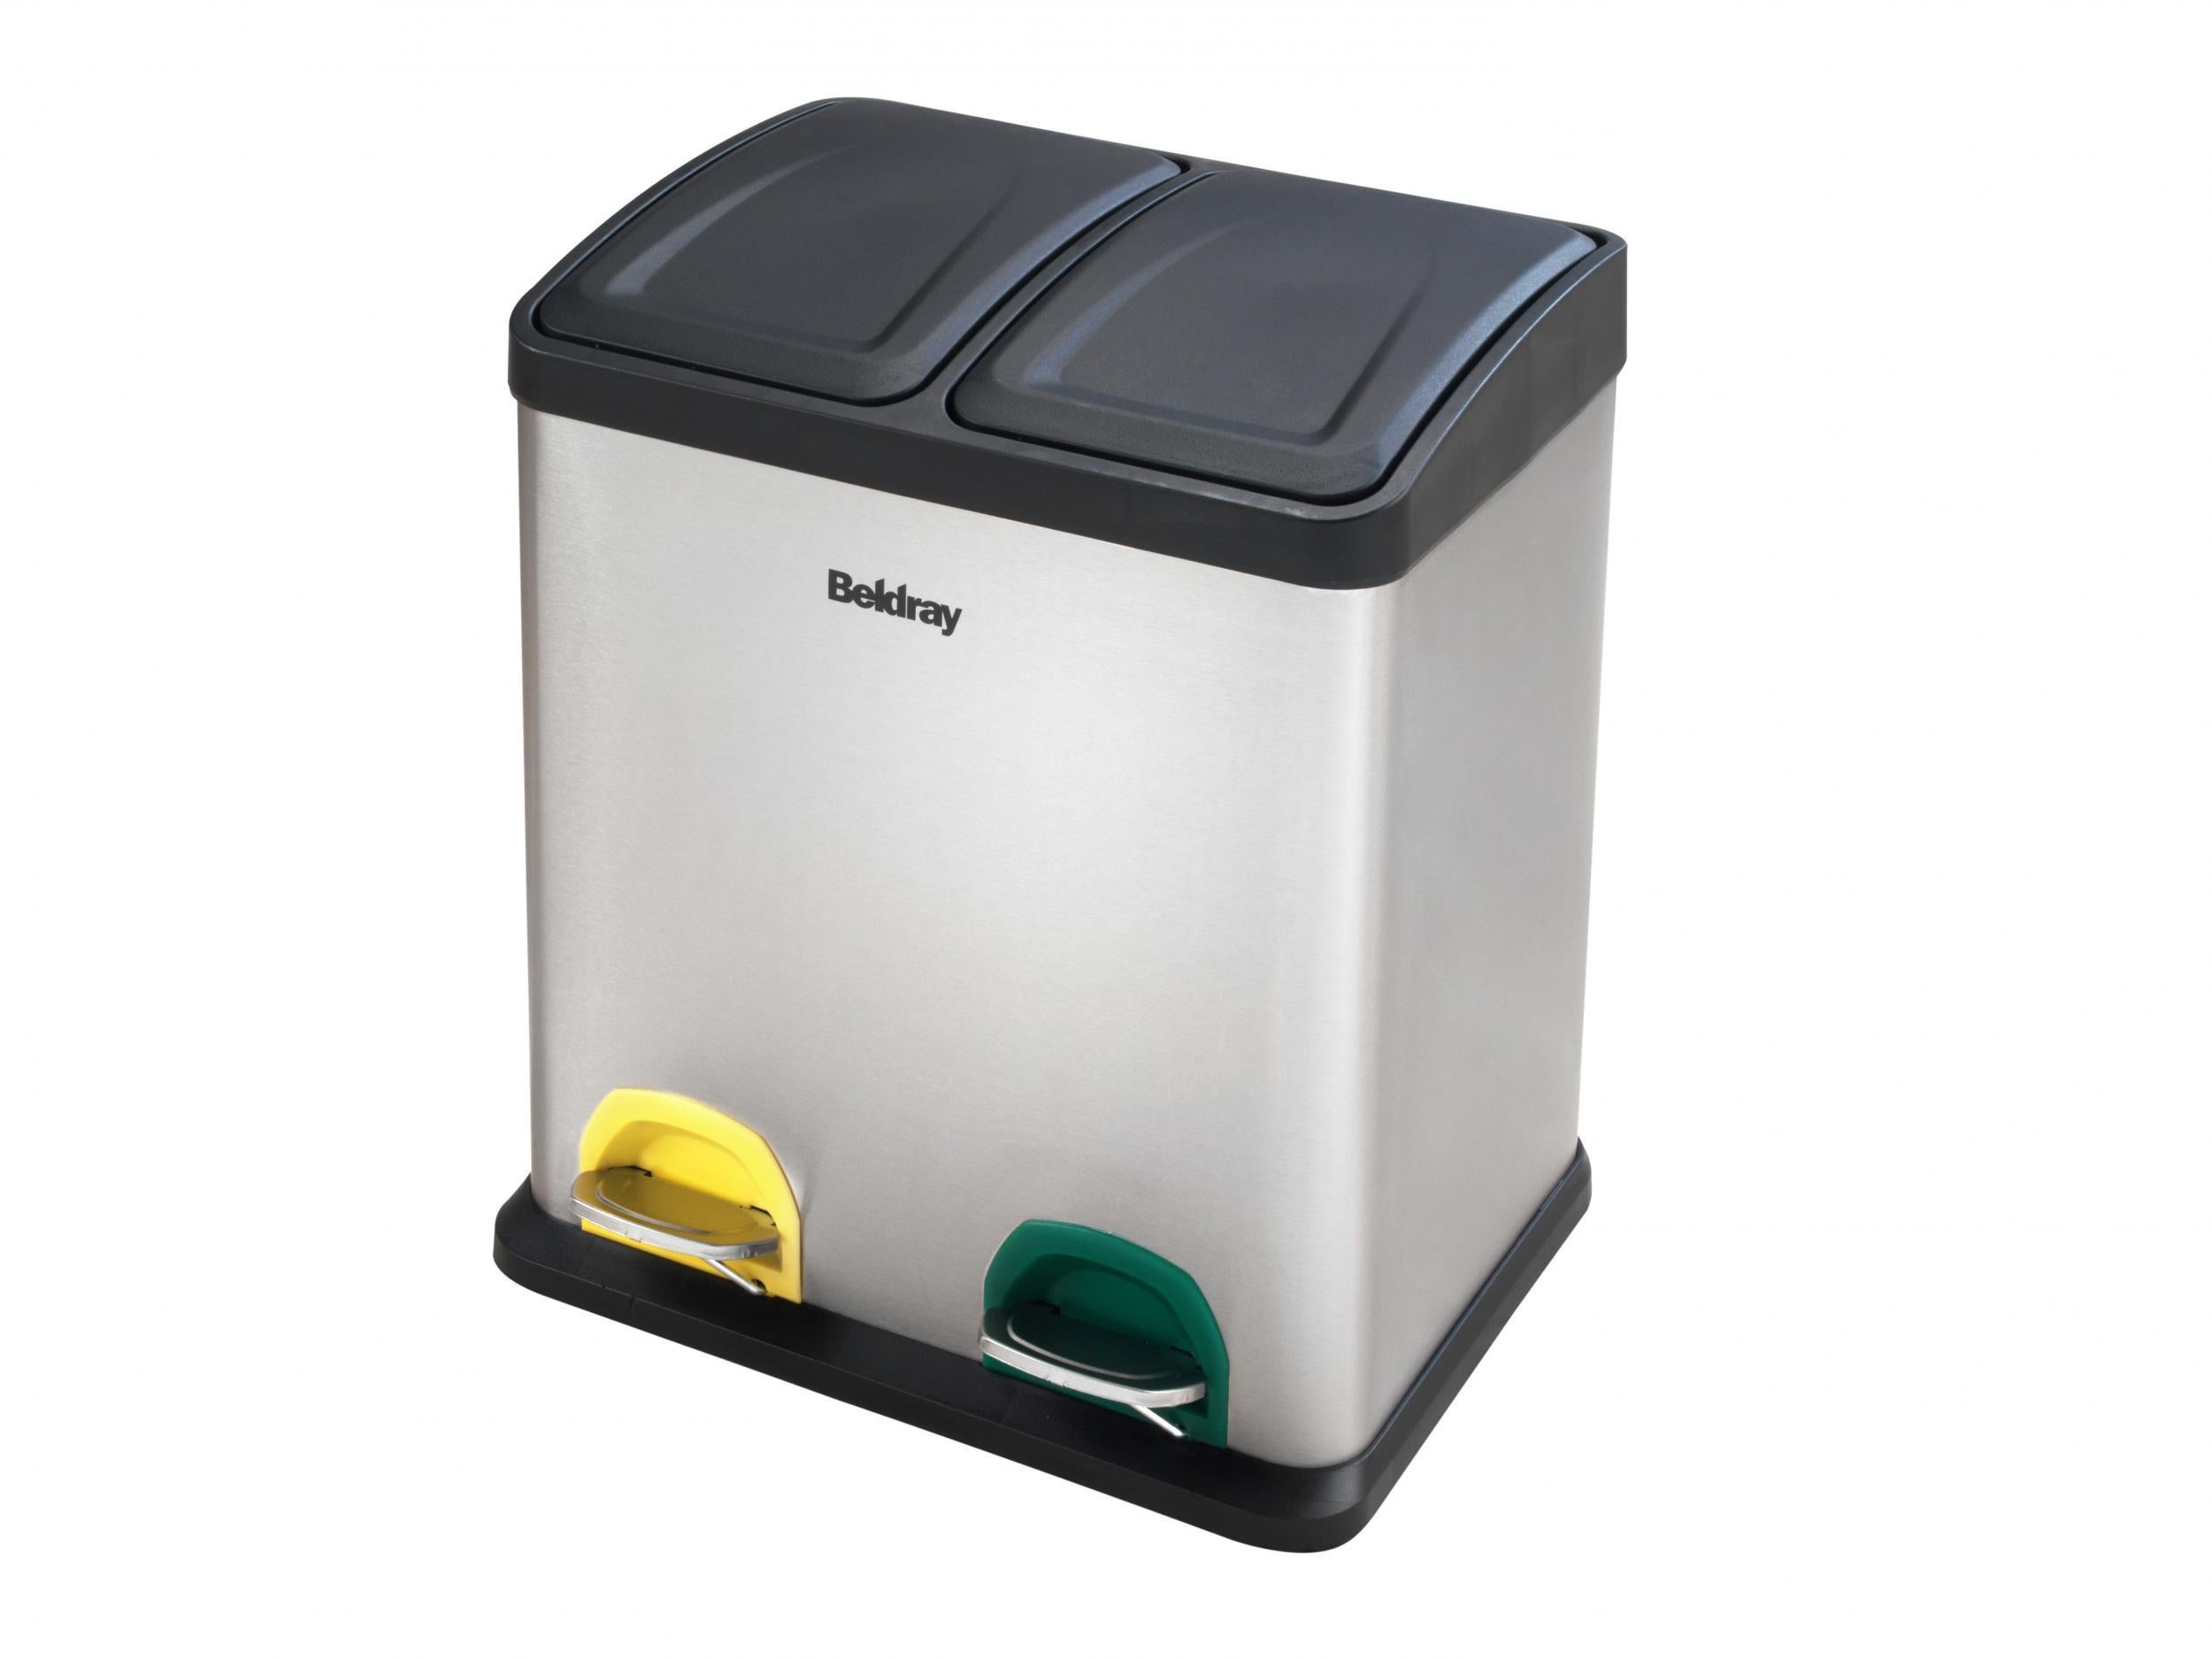 10 best recycling bins | The Independent